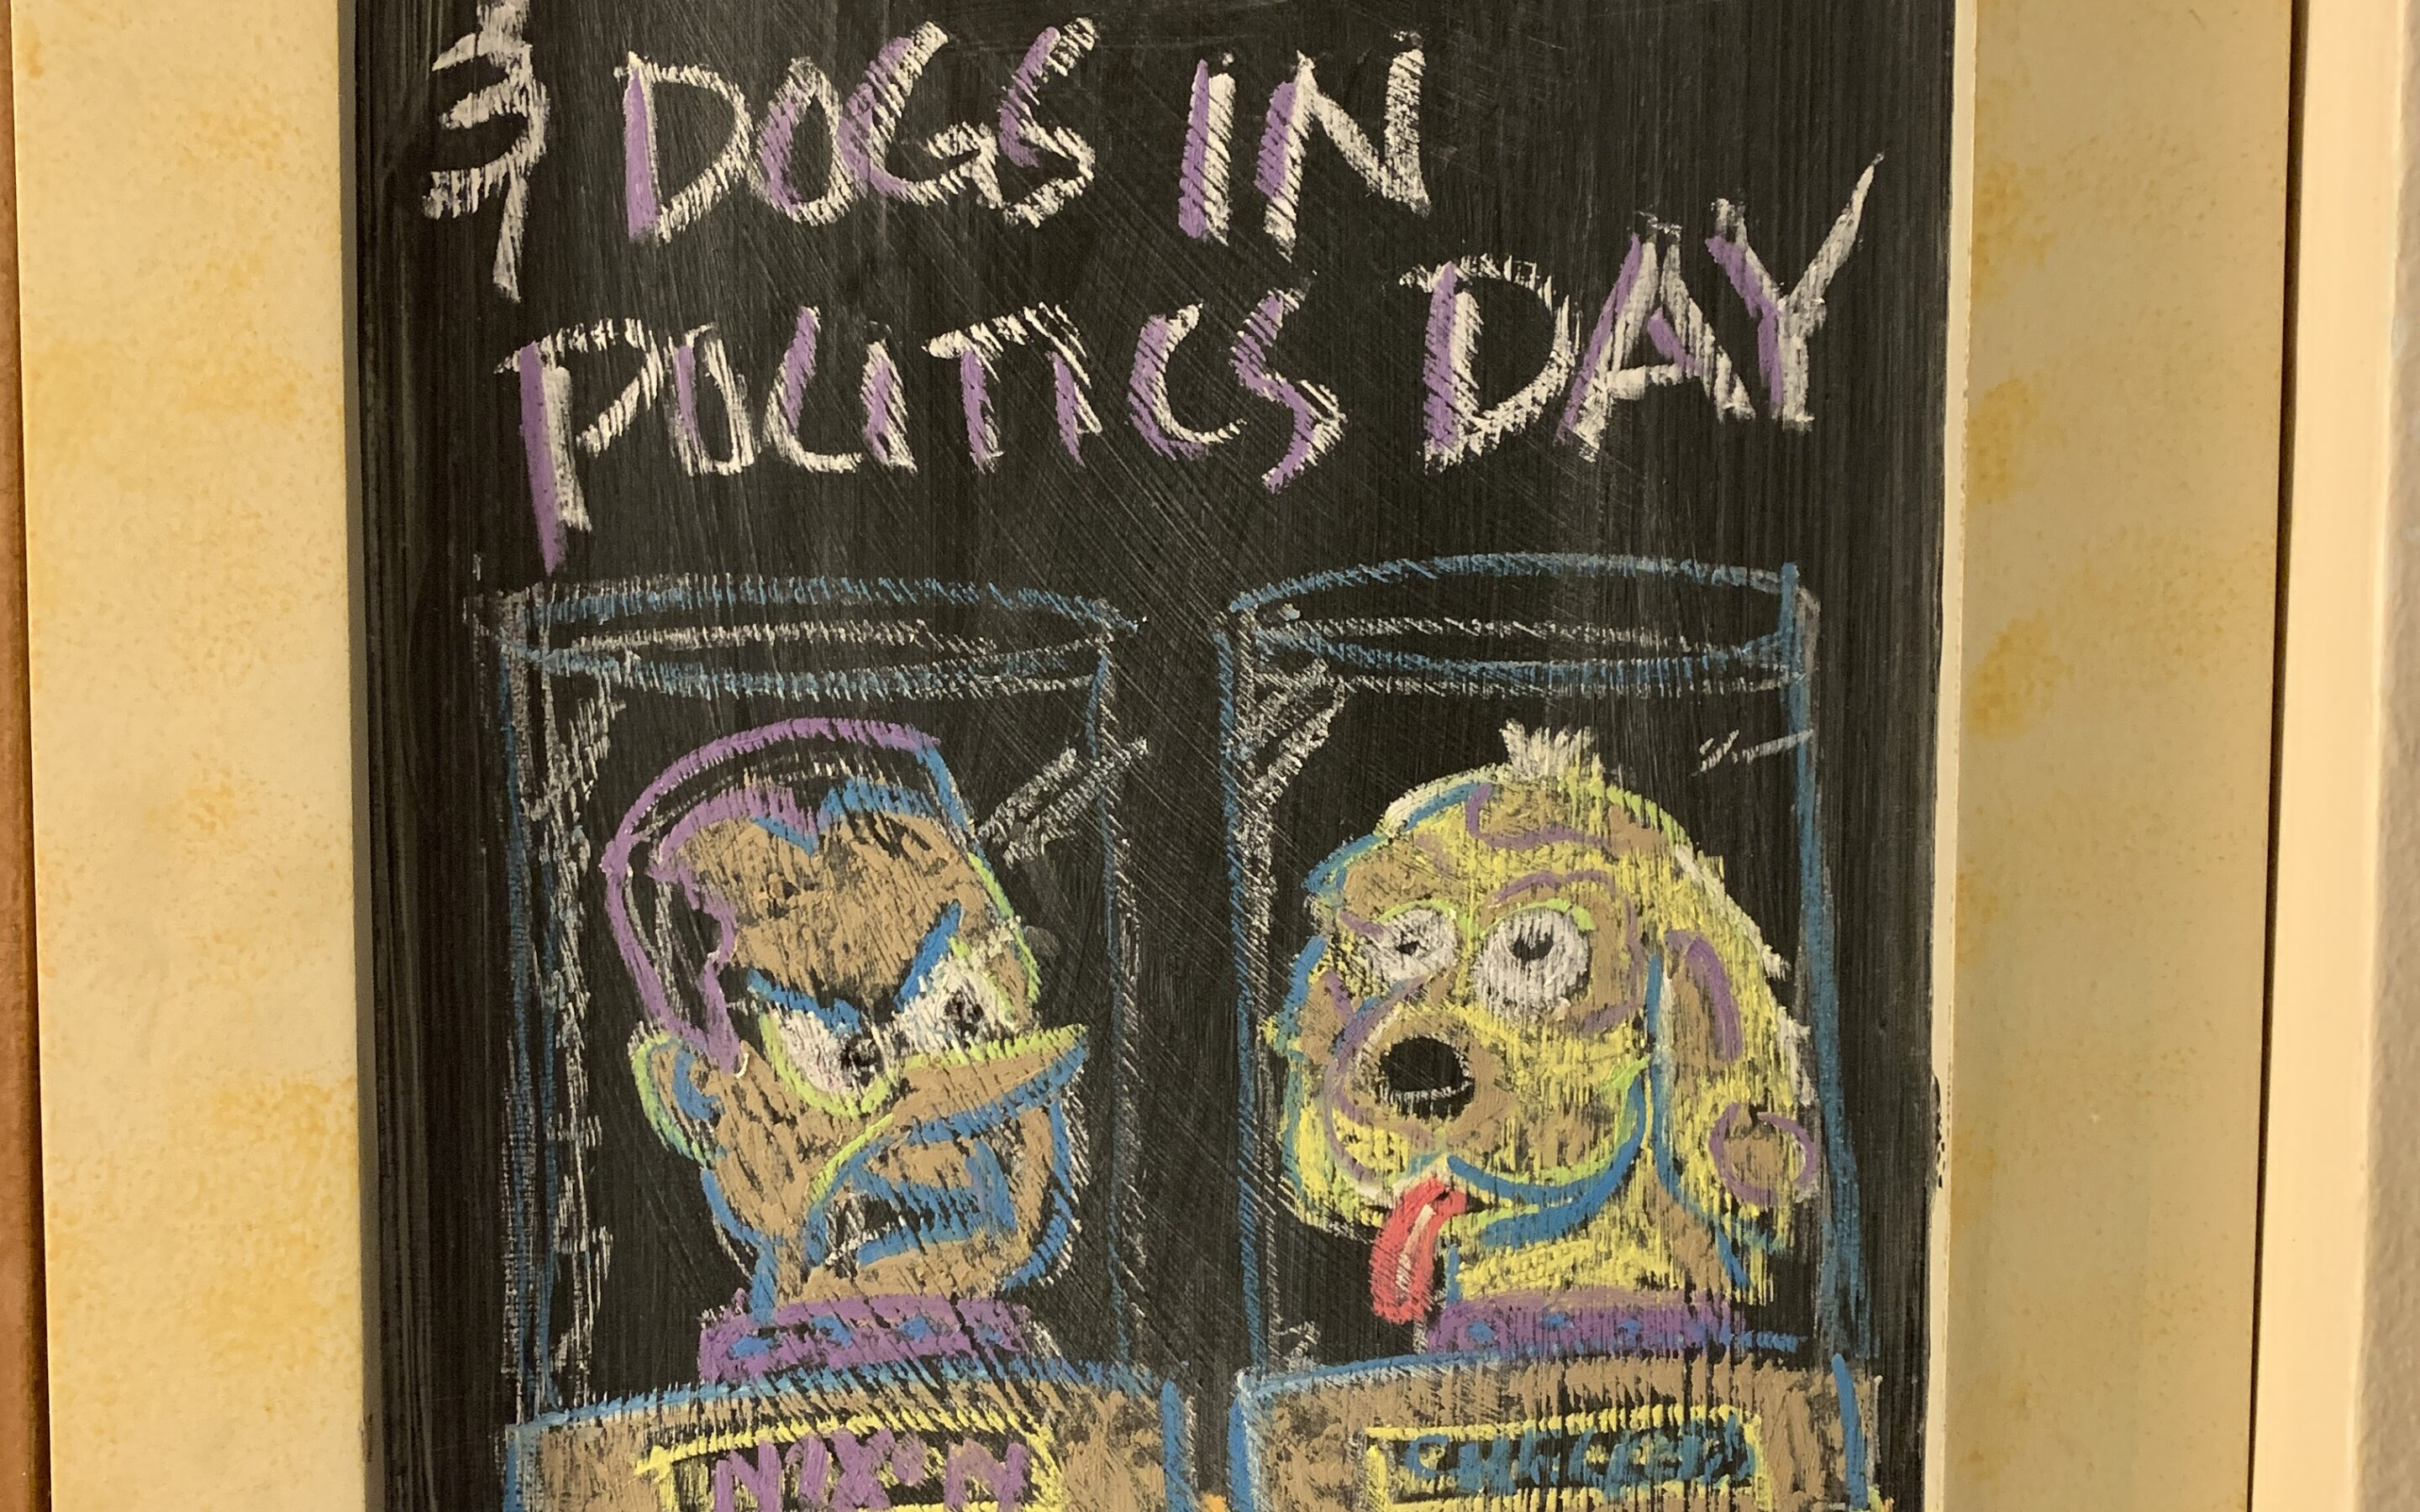 National checkers day and dogs in politics day